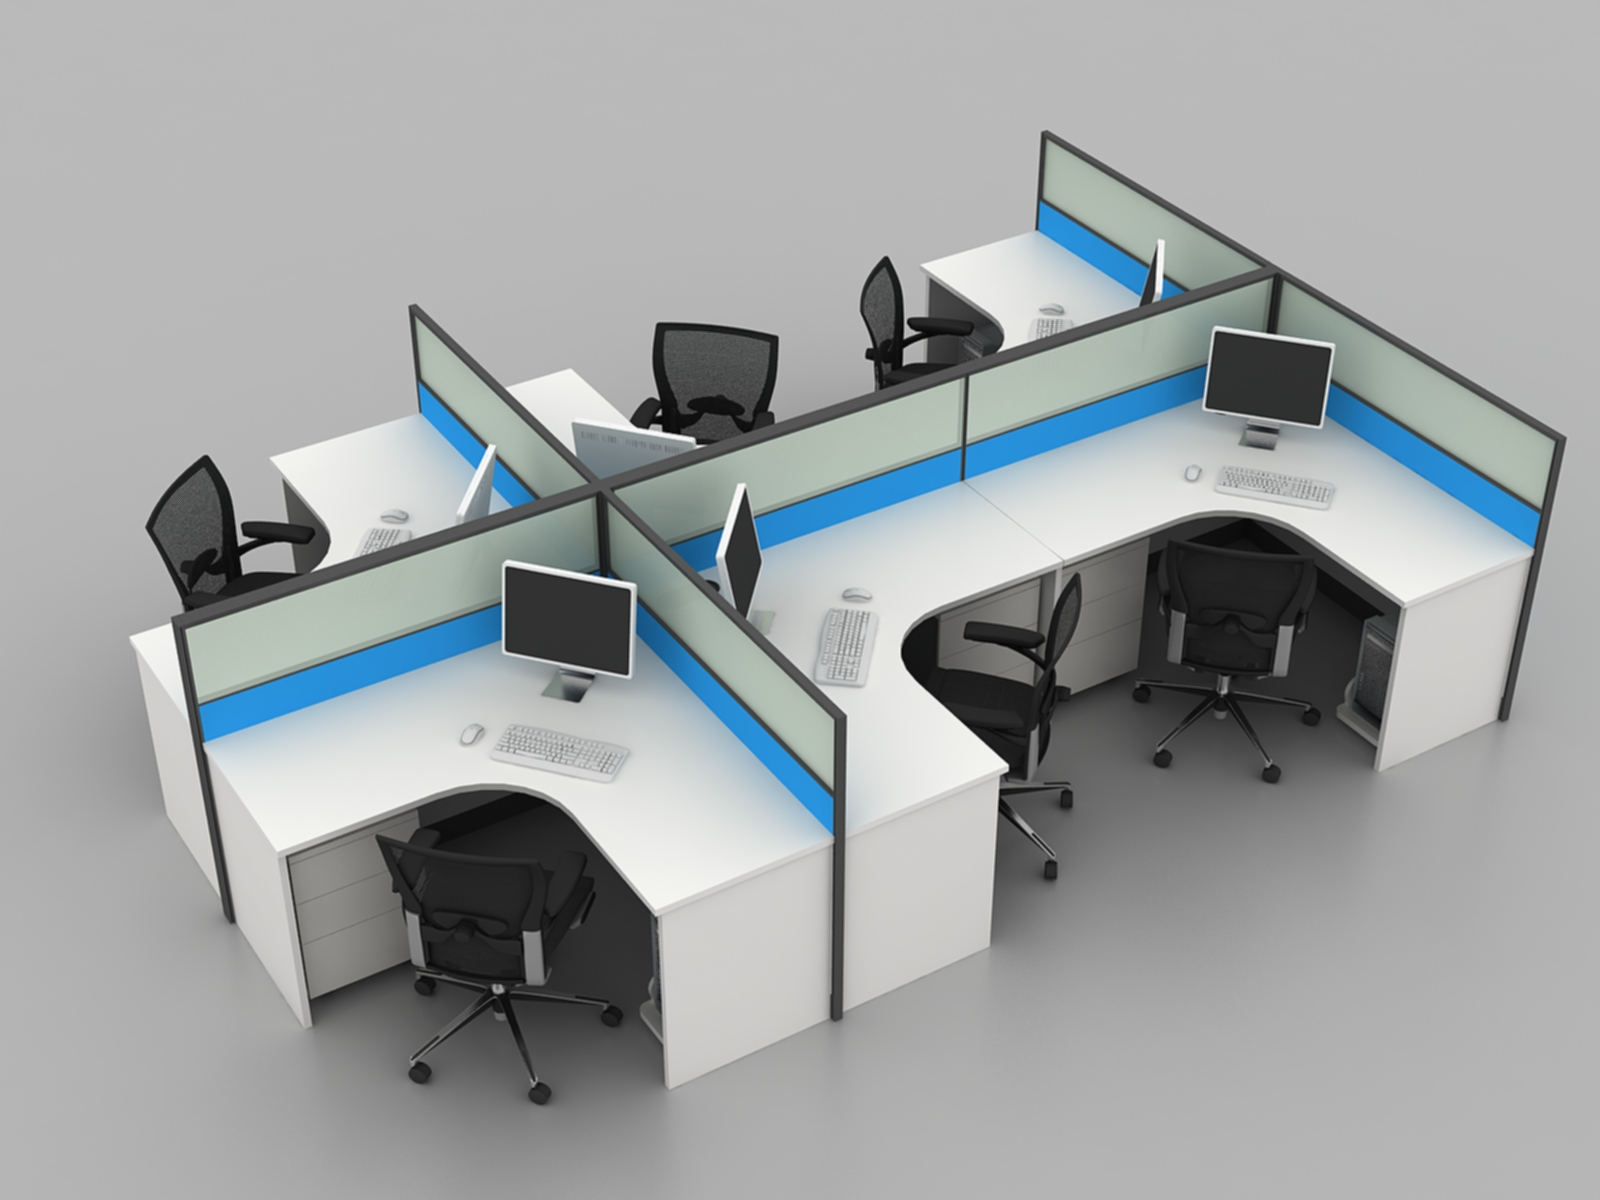 L Shape 4 Seat Modular Glass call center office cubicles